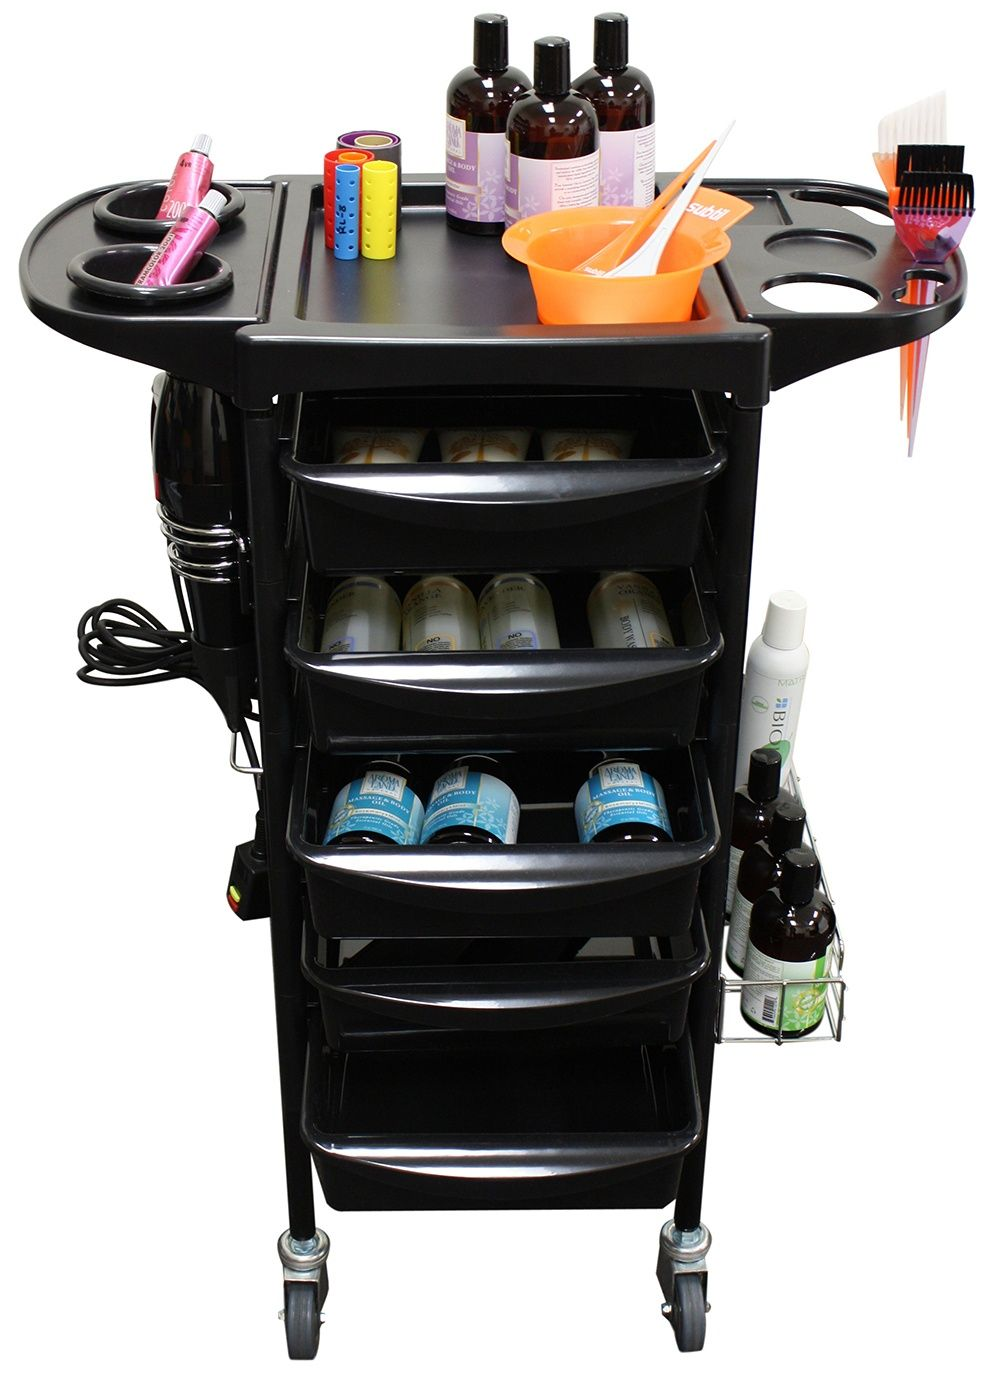 Mobile Storage Cabinets And Trolleys For Your Hair, Nail Salon, Spa, Or  Beauty